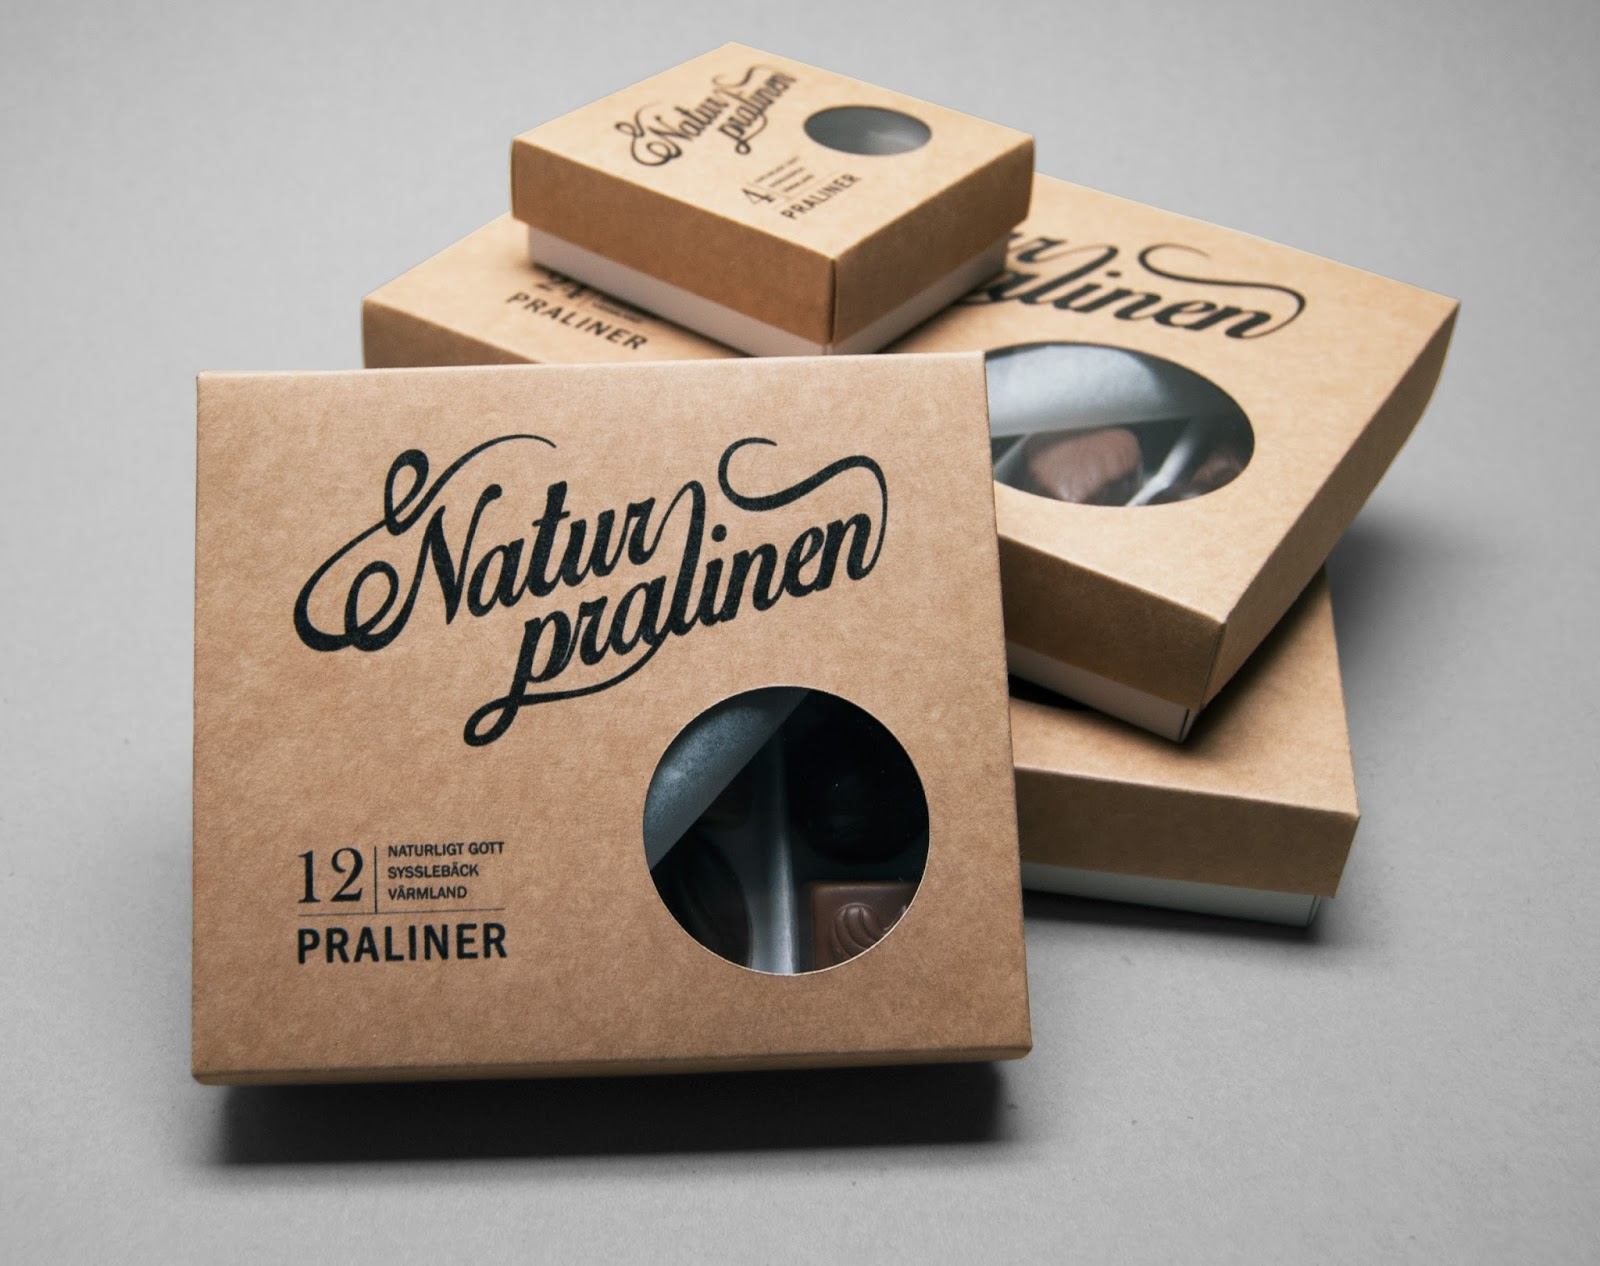 Super Naturpralinen (Student Project) on Packaging of the World  AE77